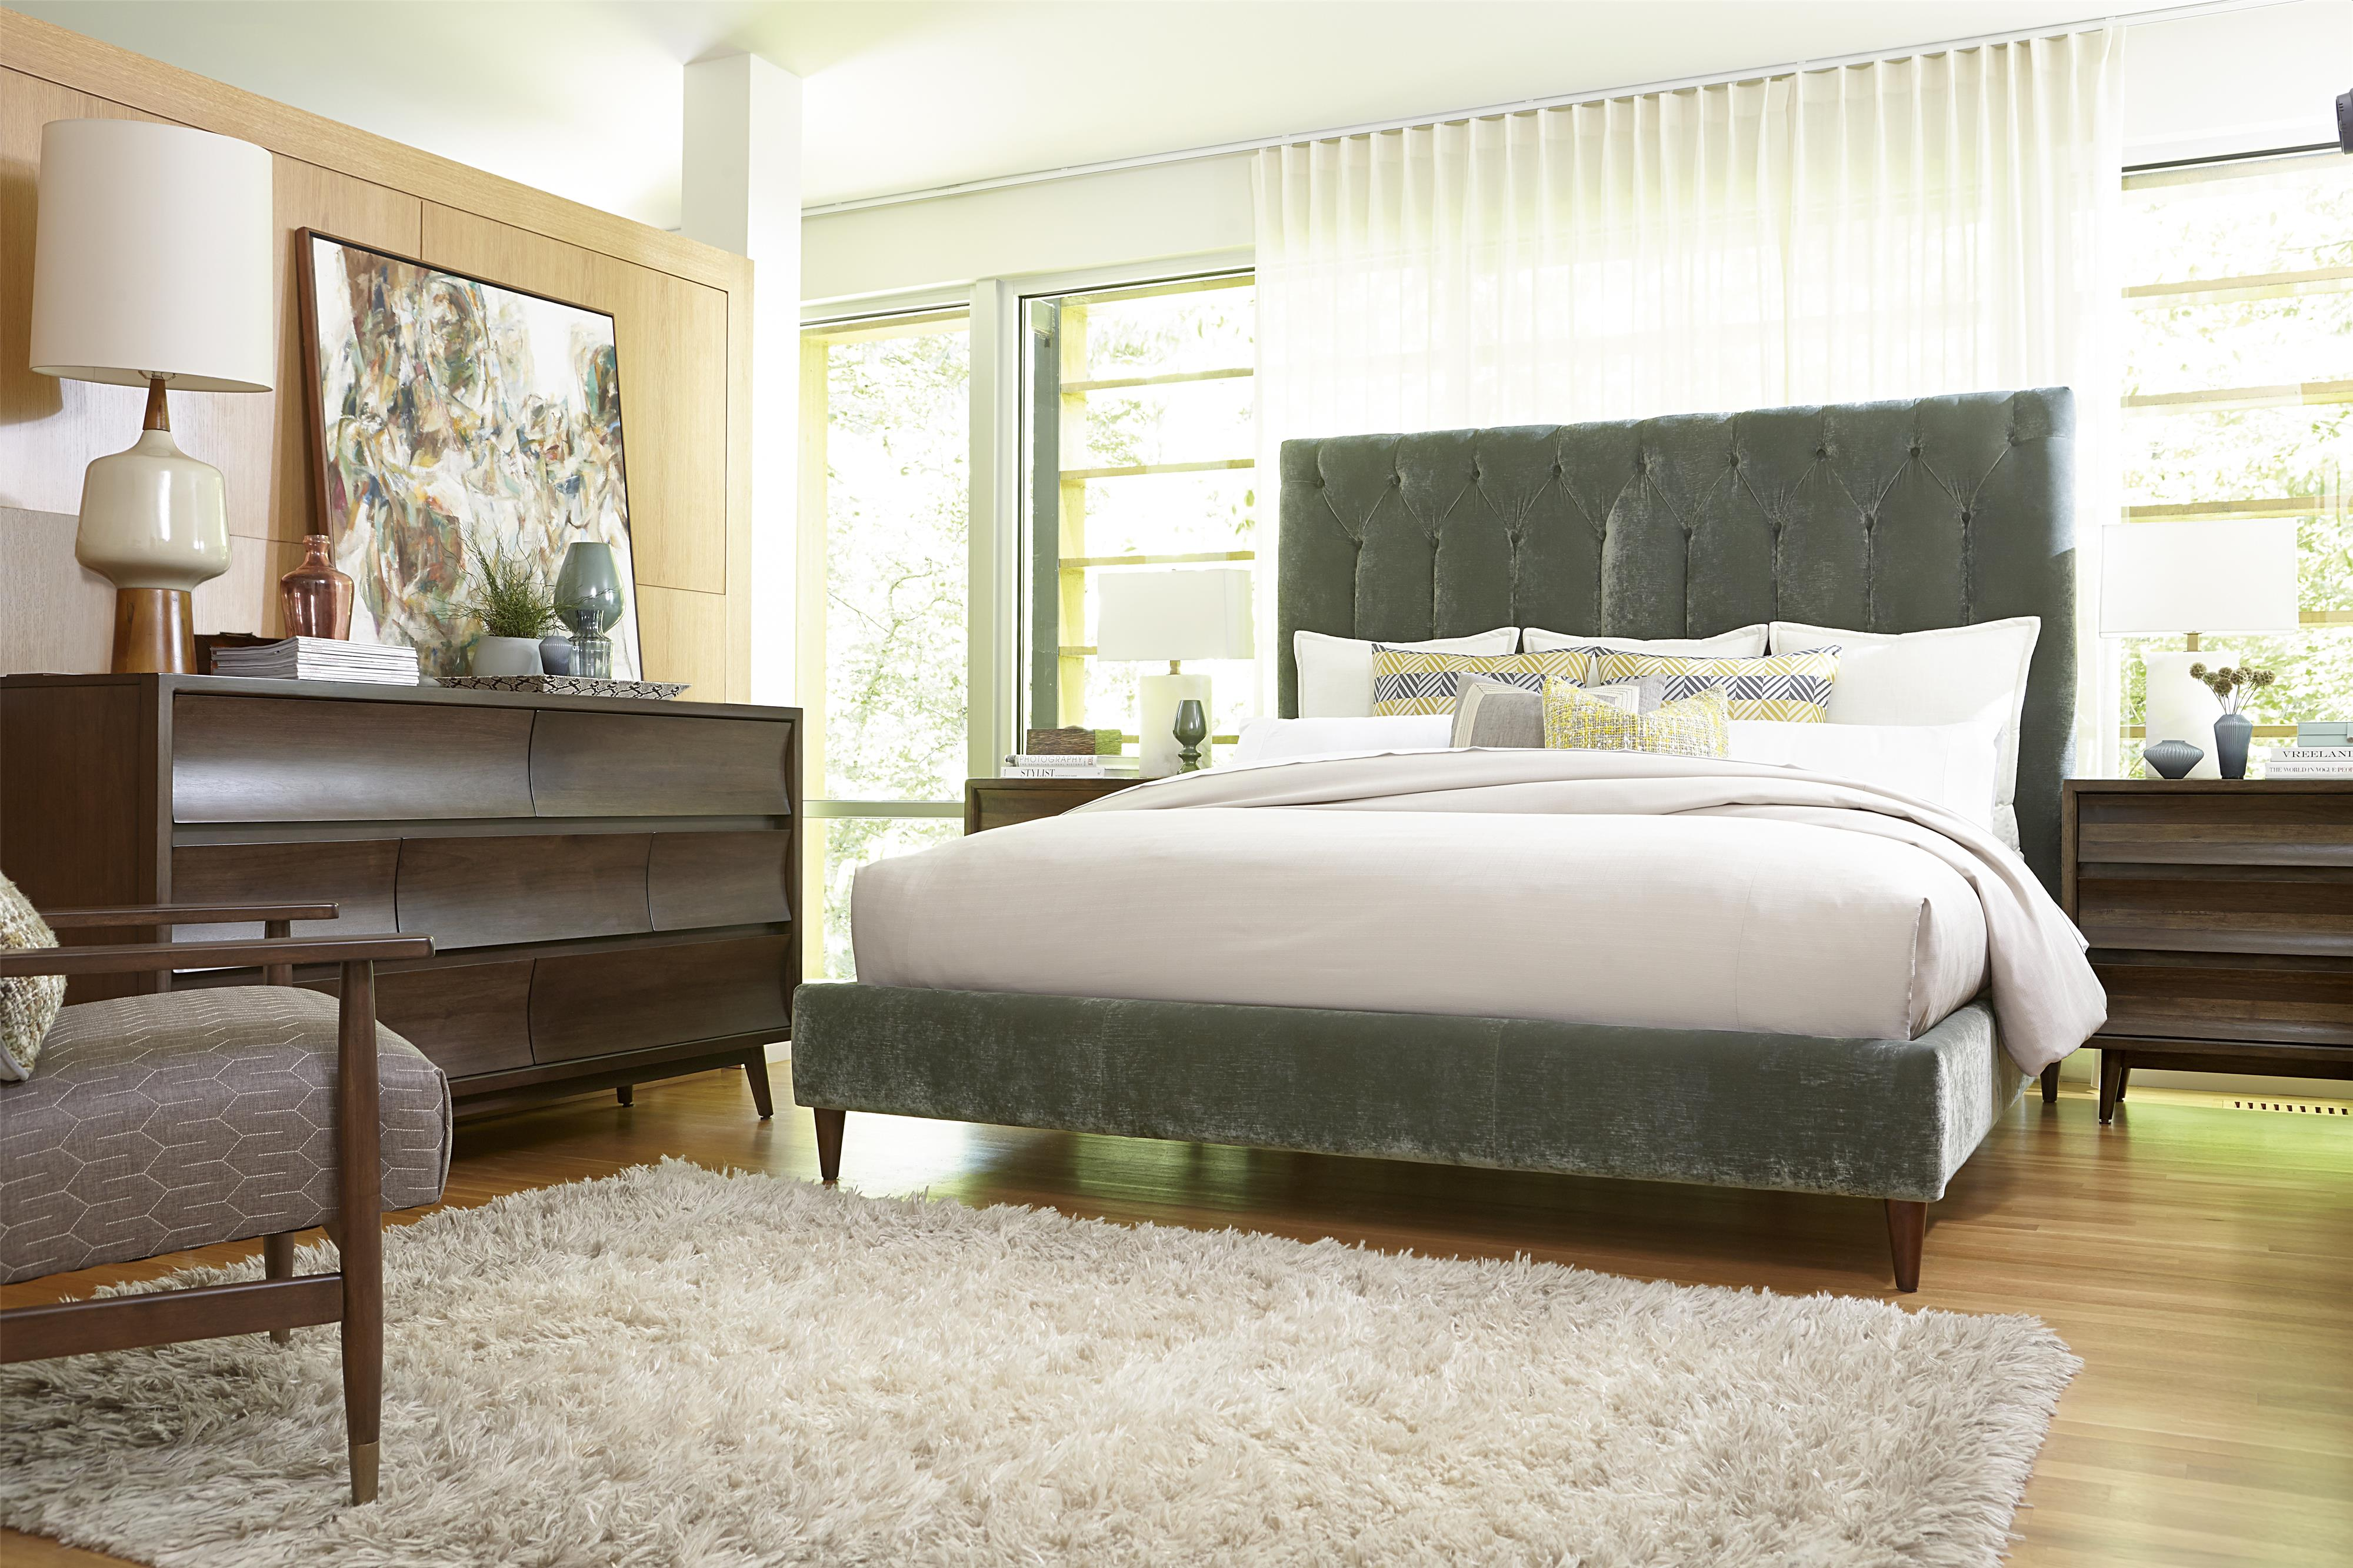 Belfort Signature Urban Treasures Queen Bedroom Group - Item Number: 223000-1812 Q Bedroom Group 2